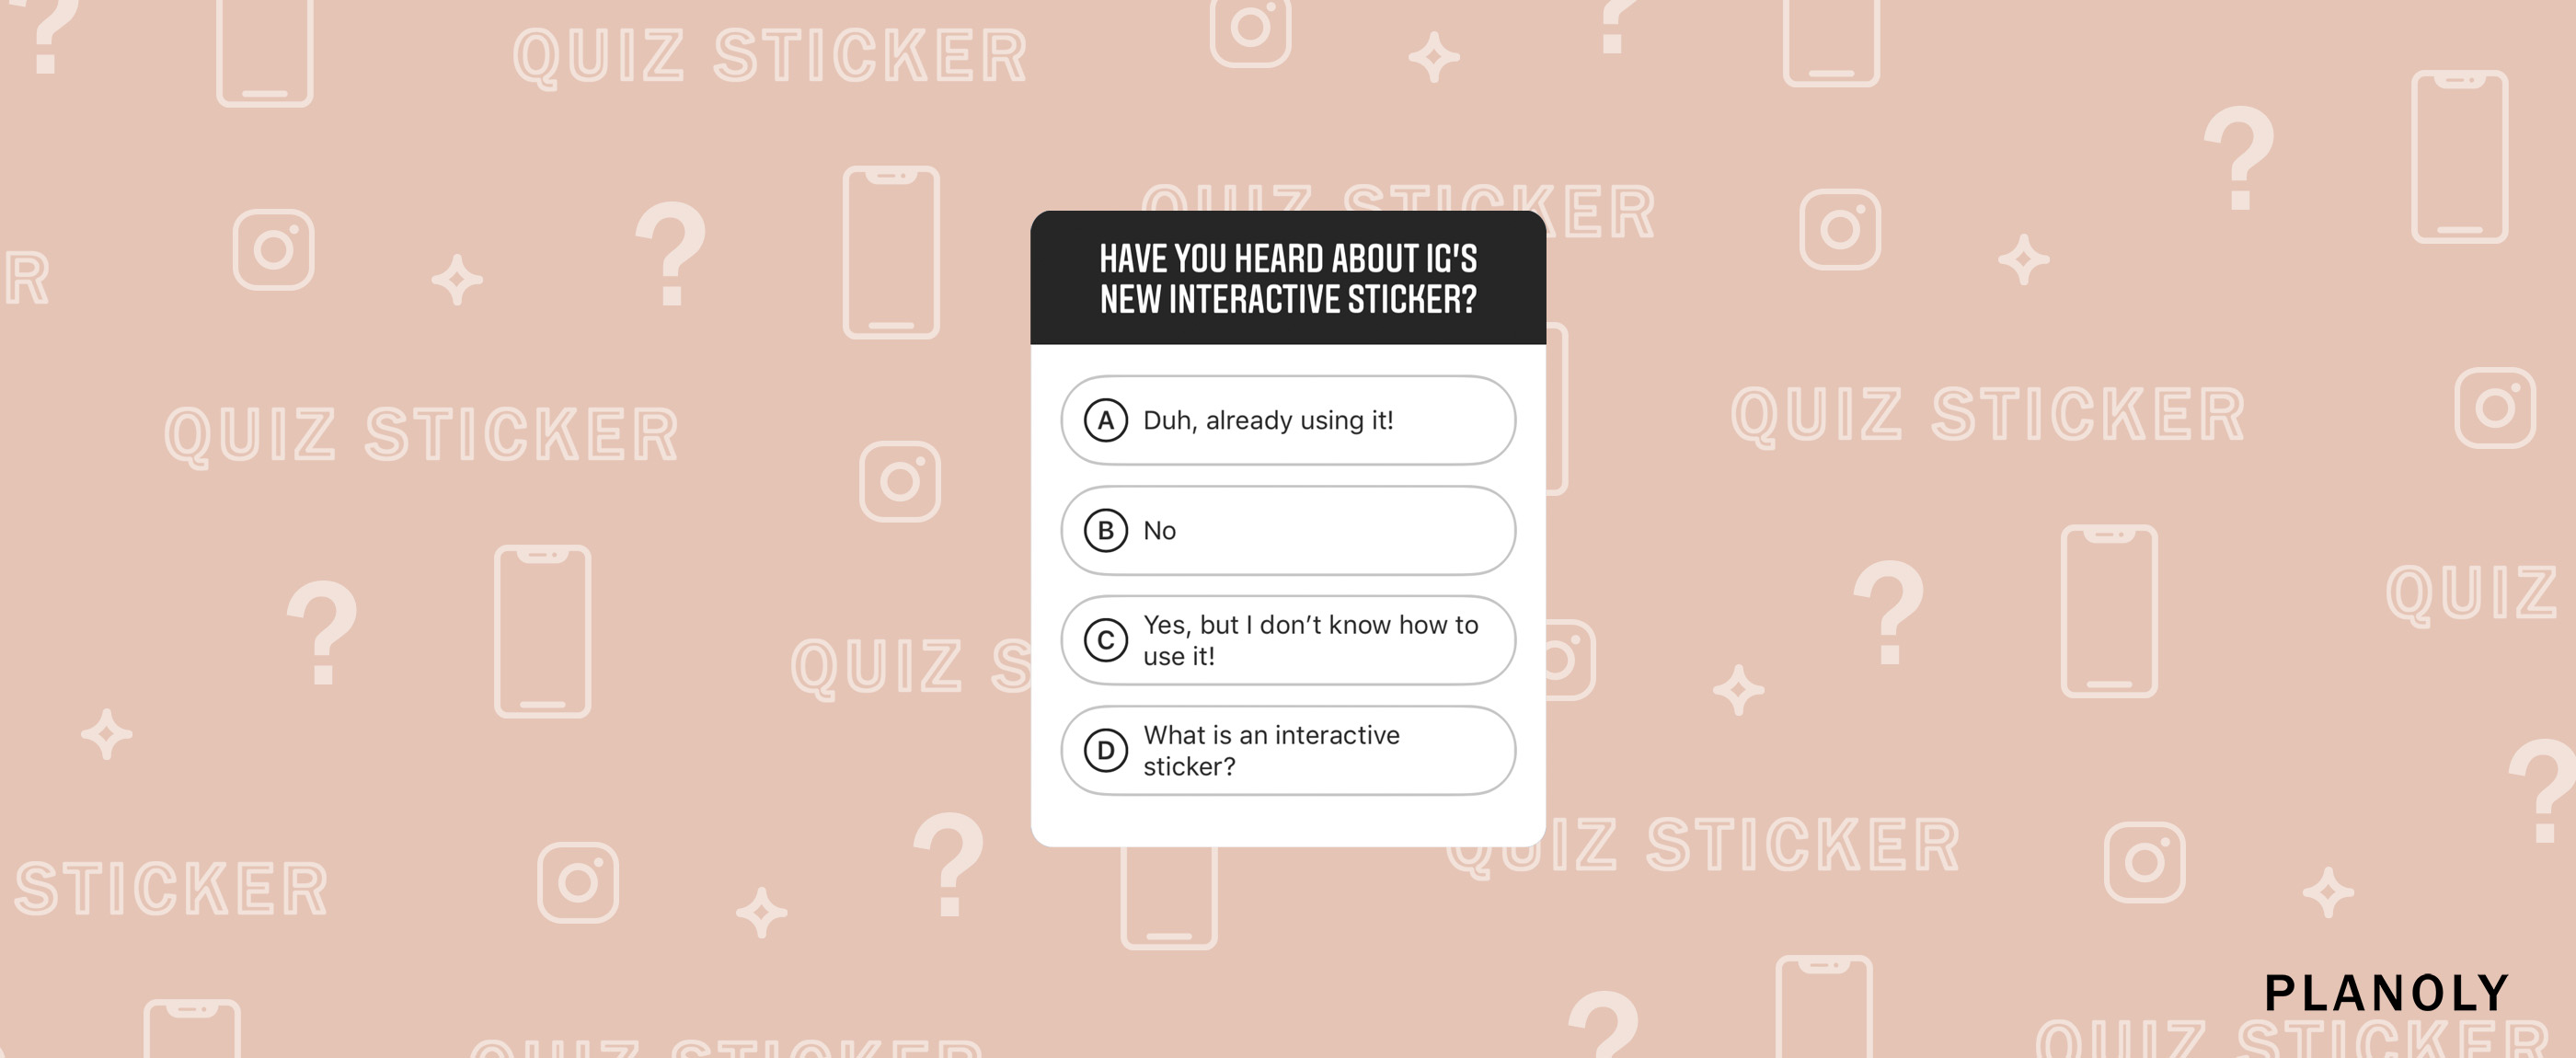 Instagram's New Interactive Quiz Sticker on Stories